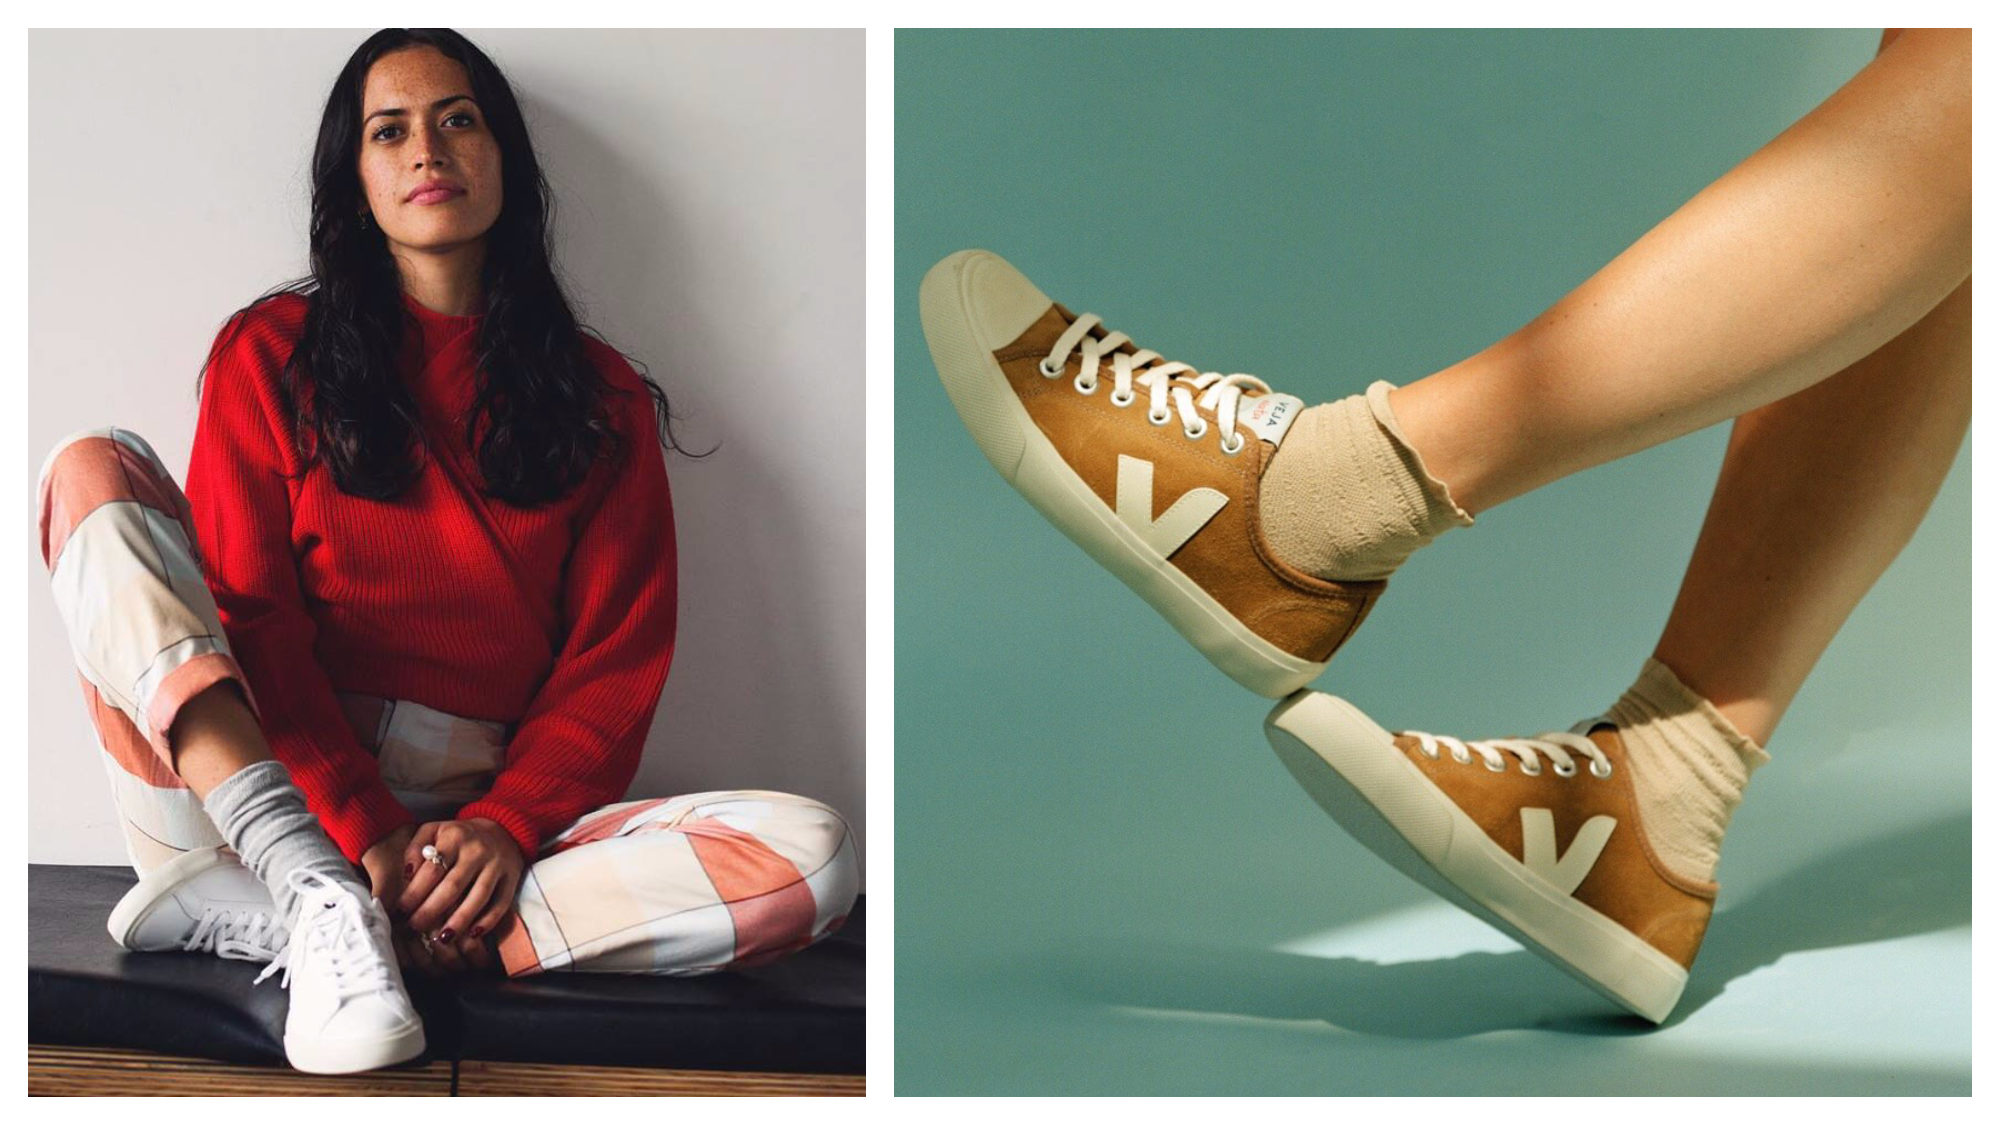 Veja is one of the brands you should know about if you want to get that Parisian fashion style, as they are sustainably made and versatile, like this white pair teamed with white trousers and red top (left) or these mustard-colored sneakers worn with cropped socks (right).